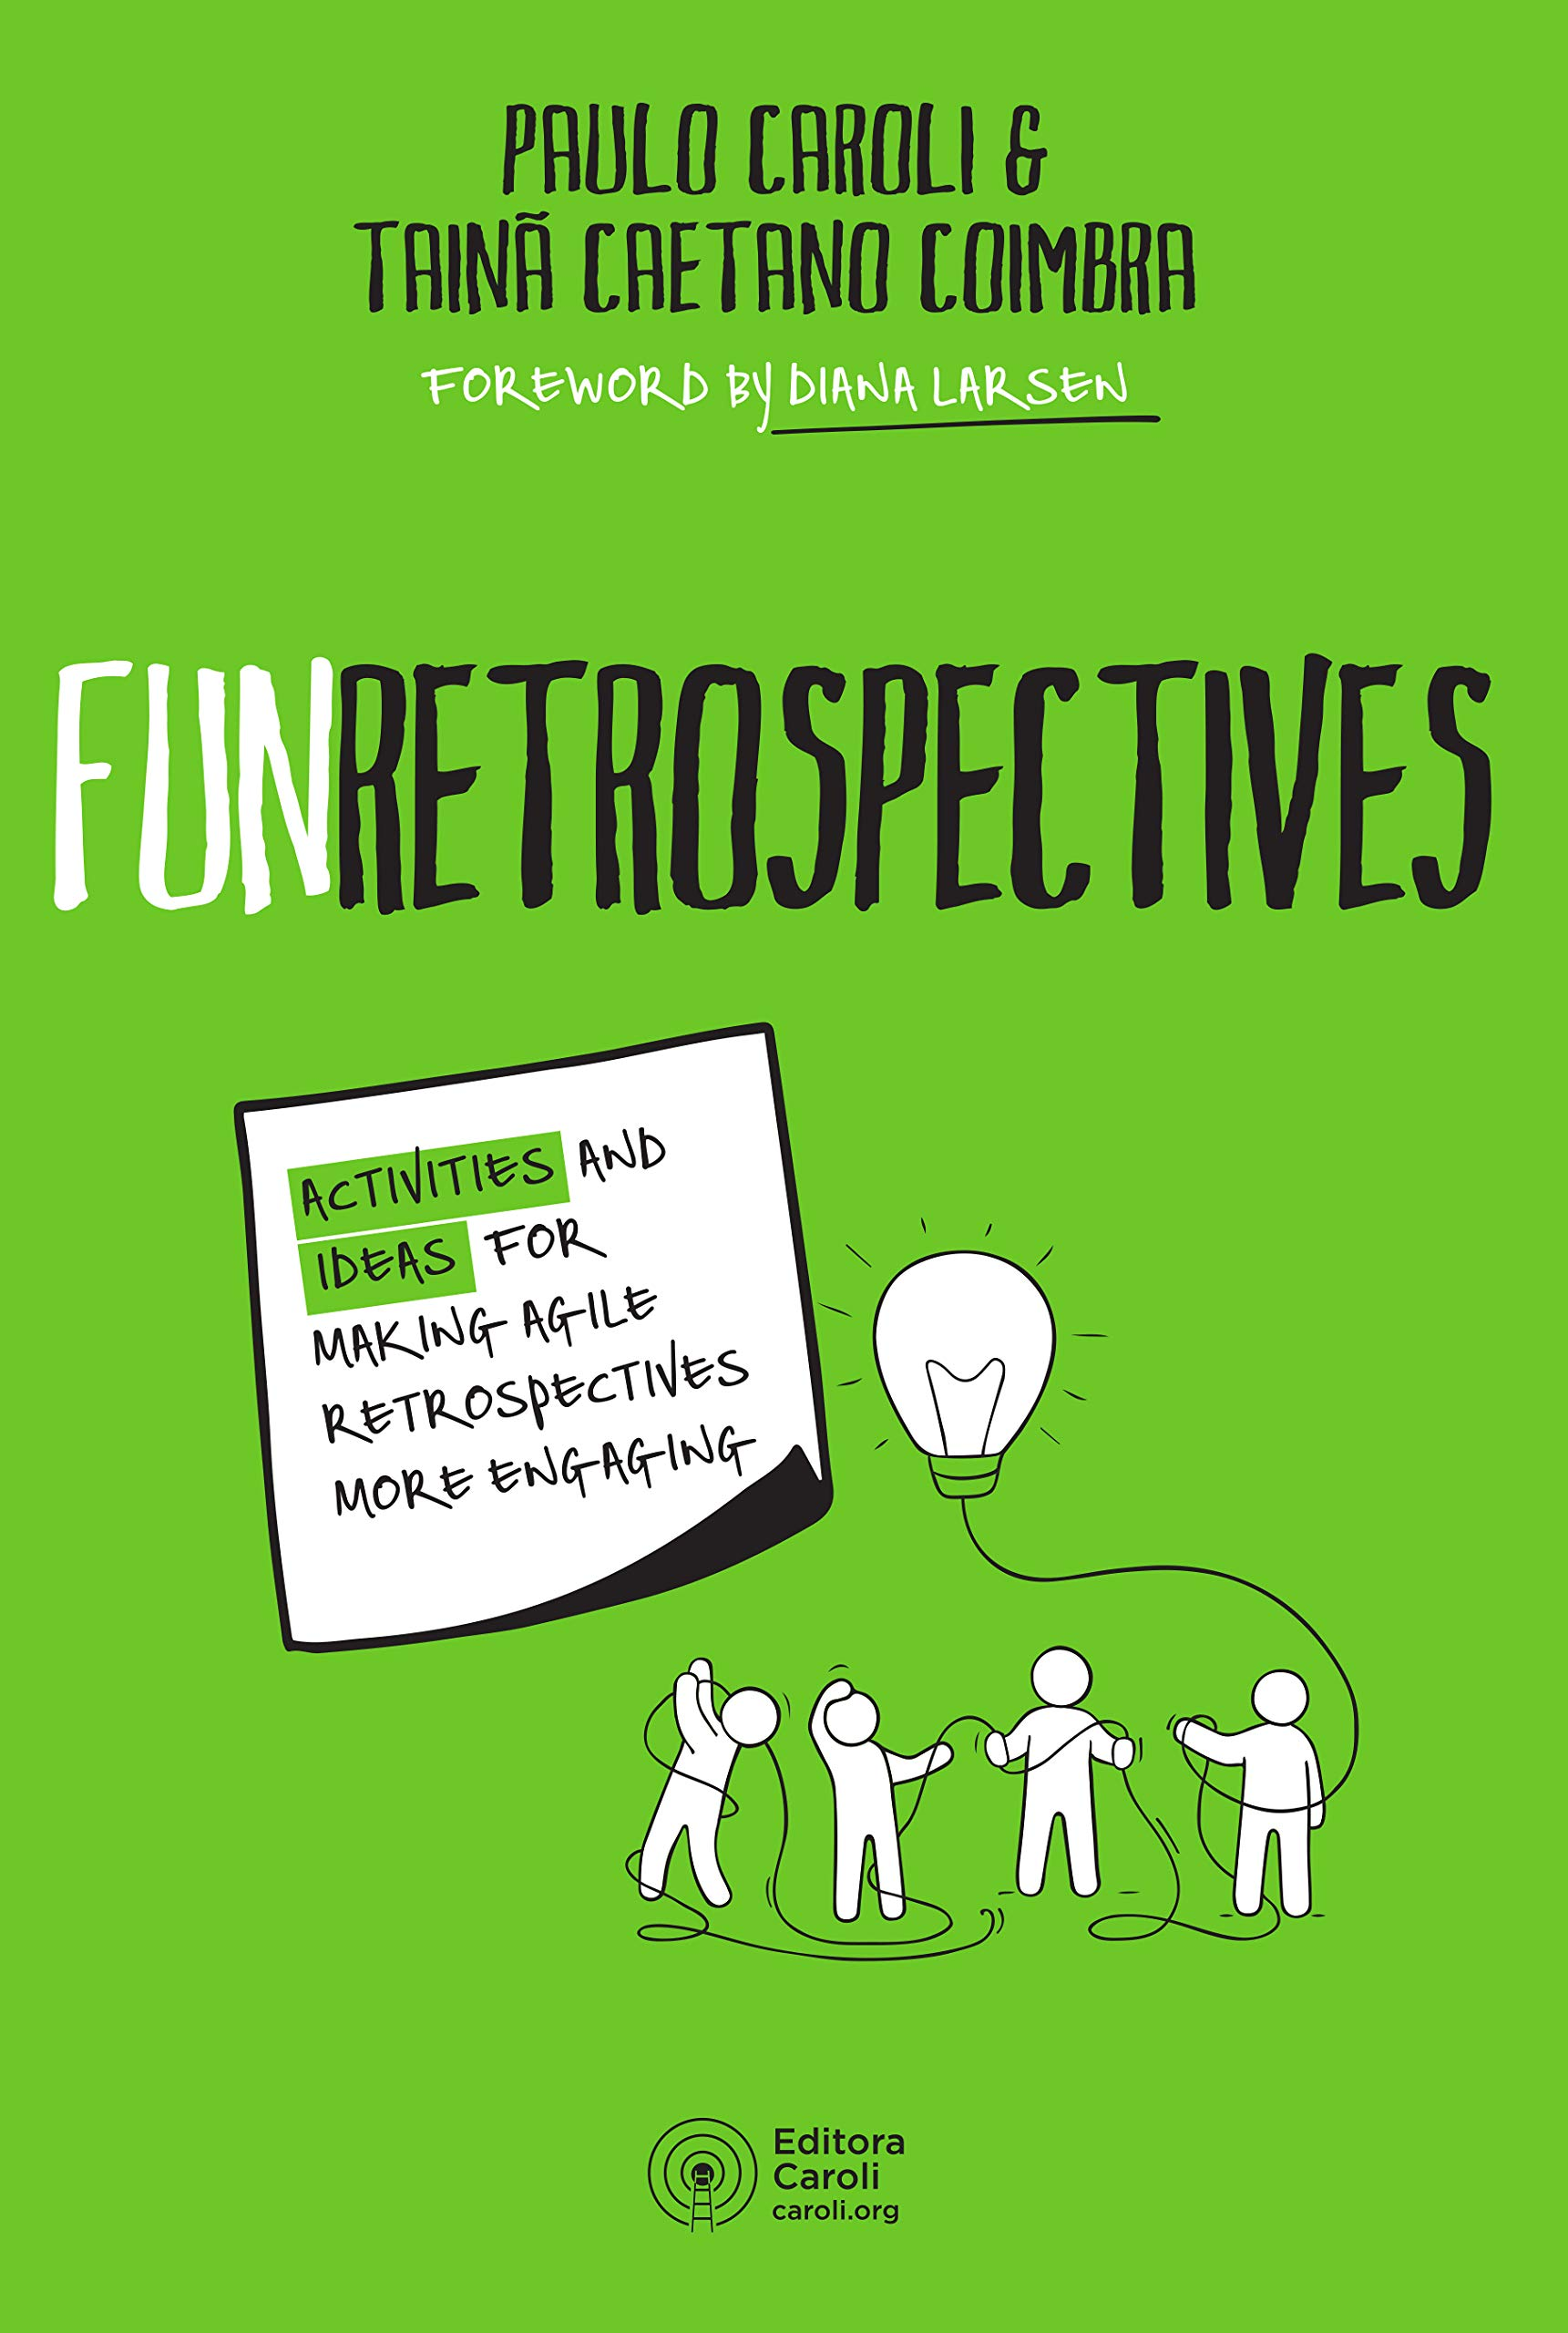 FunRetrospectives: activities and ideas for making agile retrospectives more engaging